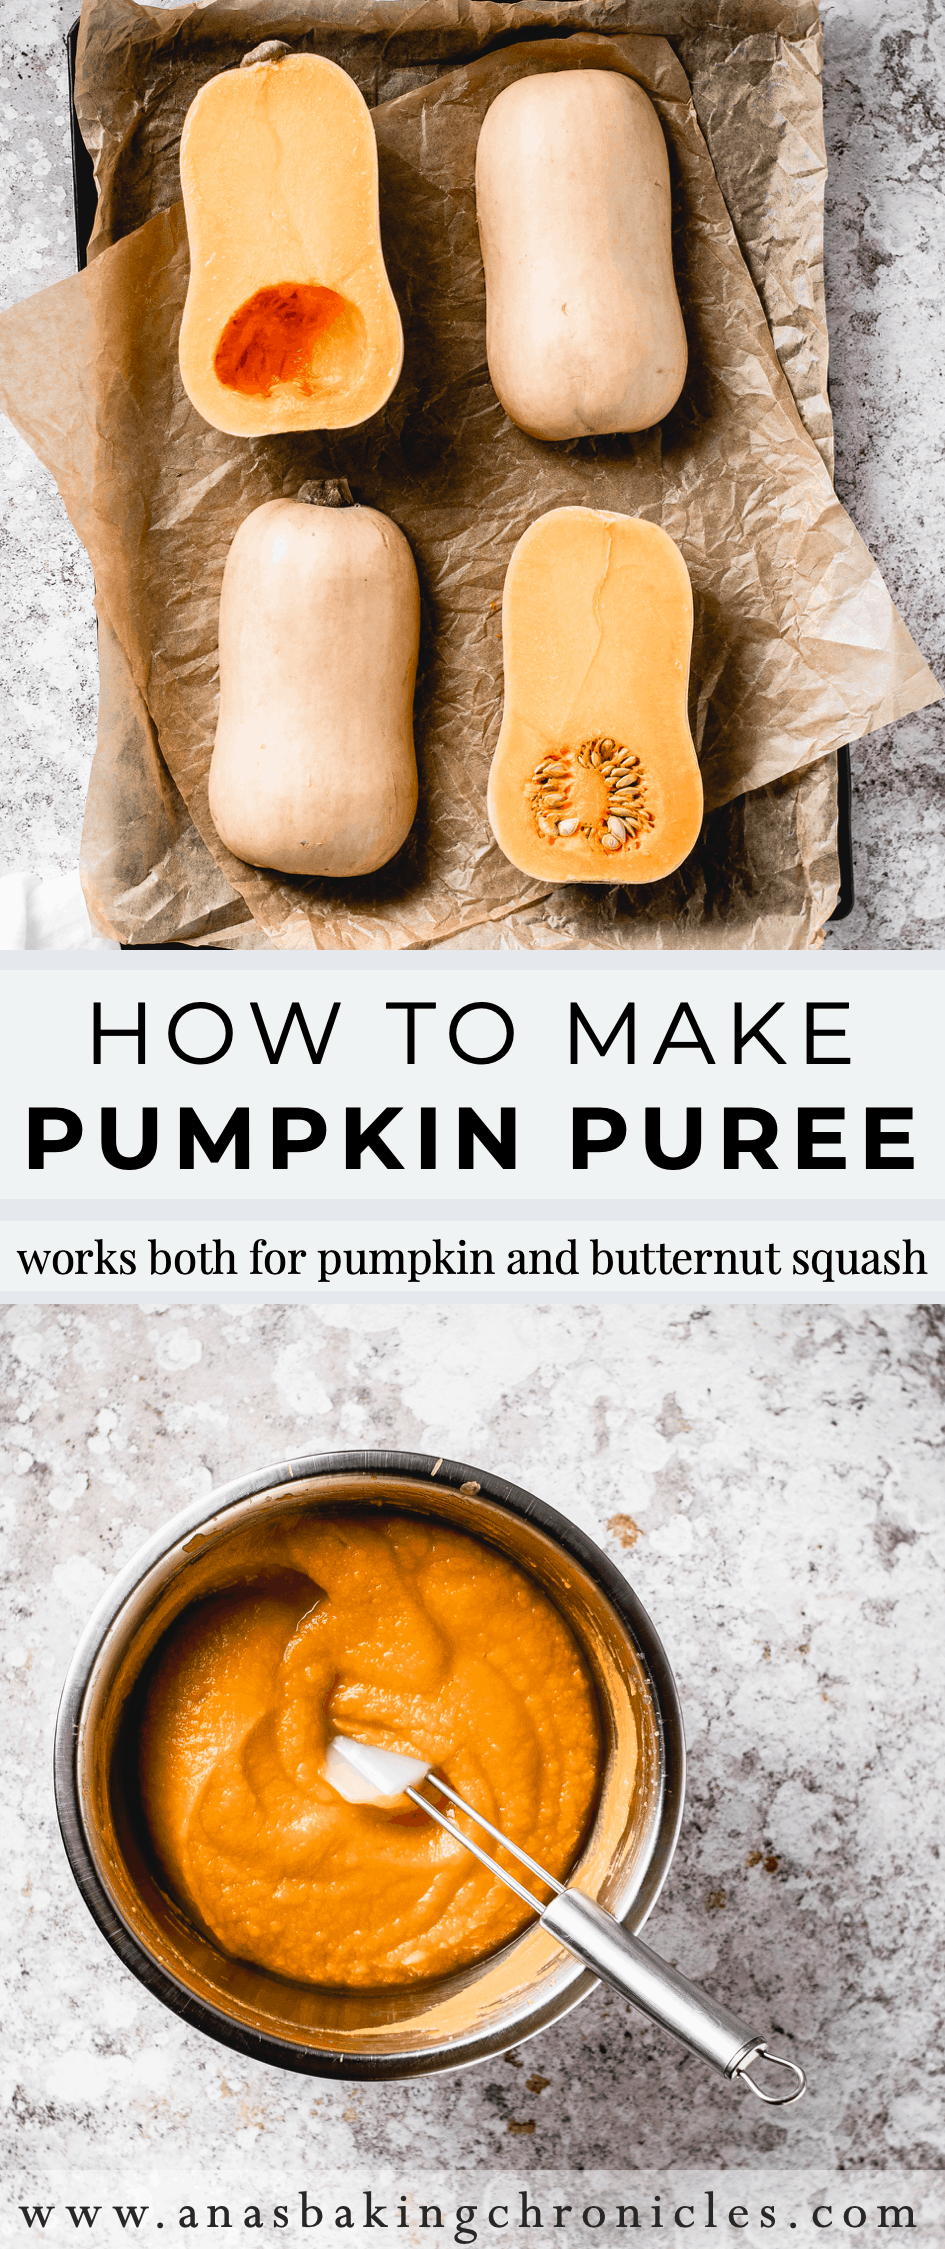 Homemade pumpkin puree is one of the easiest things to make. You can use it both in sweet and savoury dishes and I\'m going to show you how to make it! ⎪www.anasbakingchronicles.com